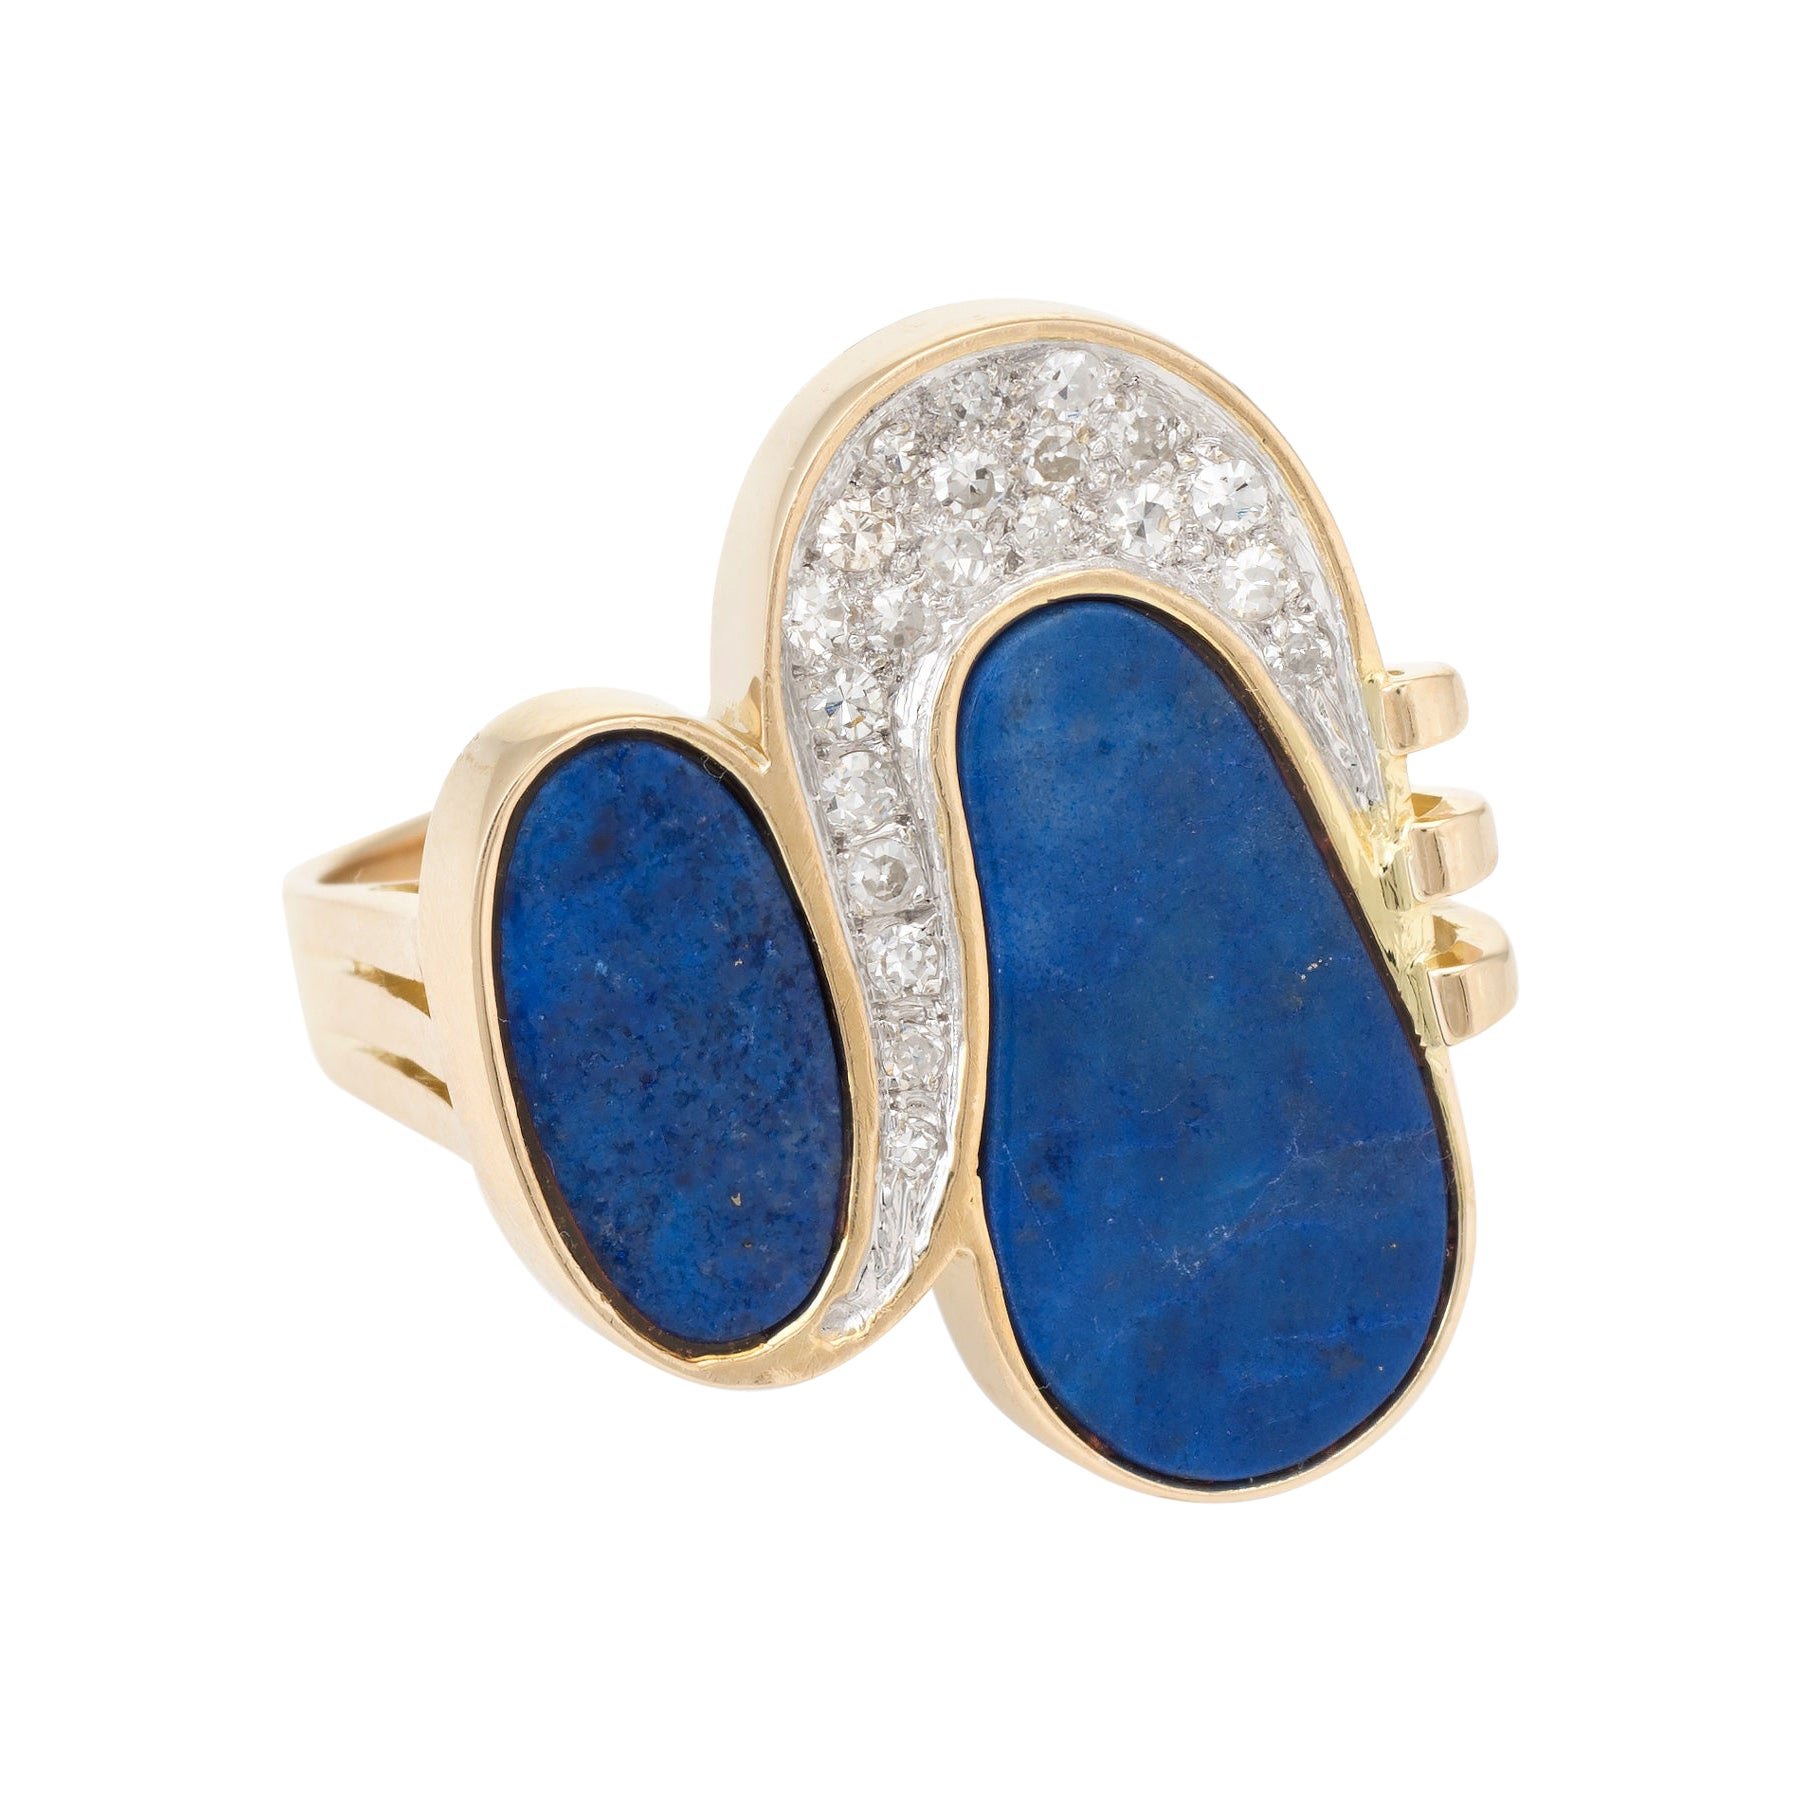 1970s Lapis Lazuli Diamond Cocktail Ring Vintage 14 Karat Gold Estate Jewelry